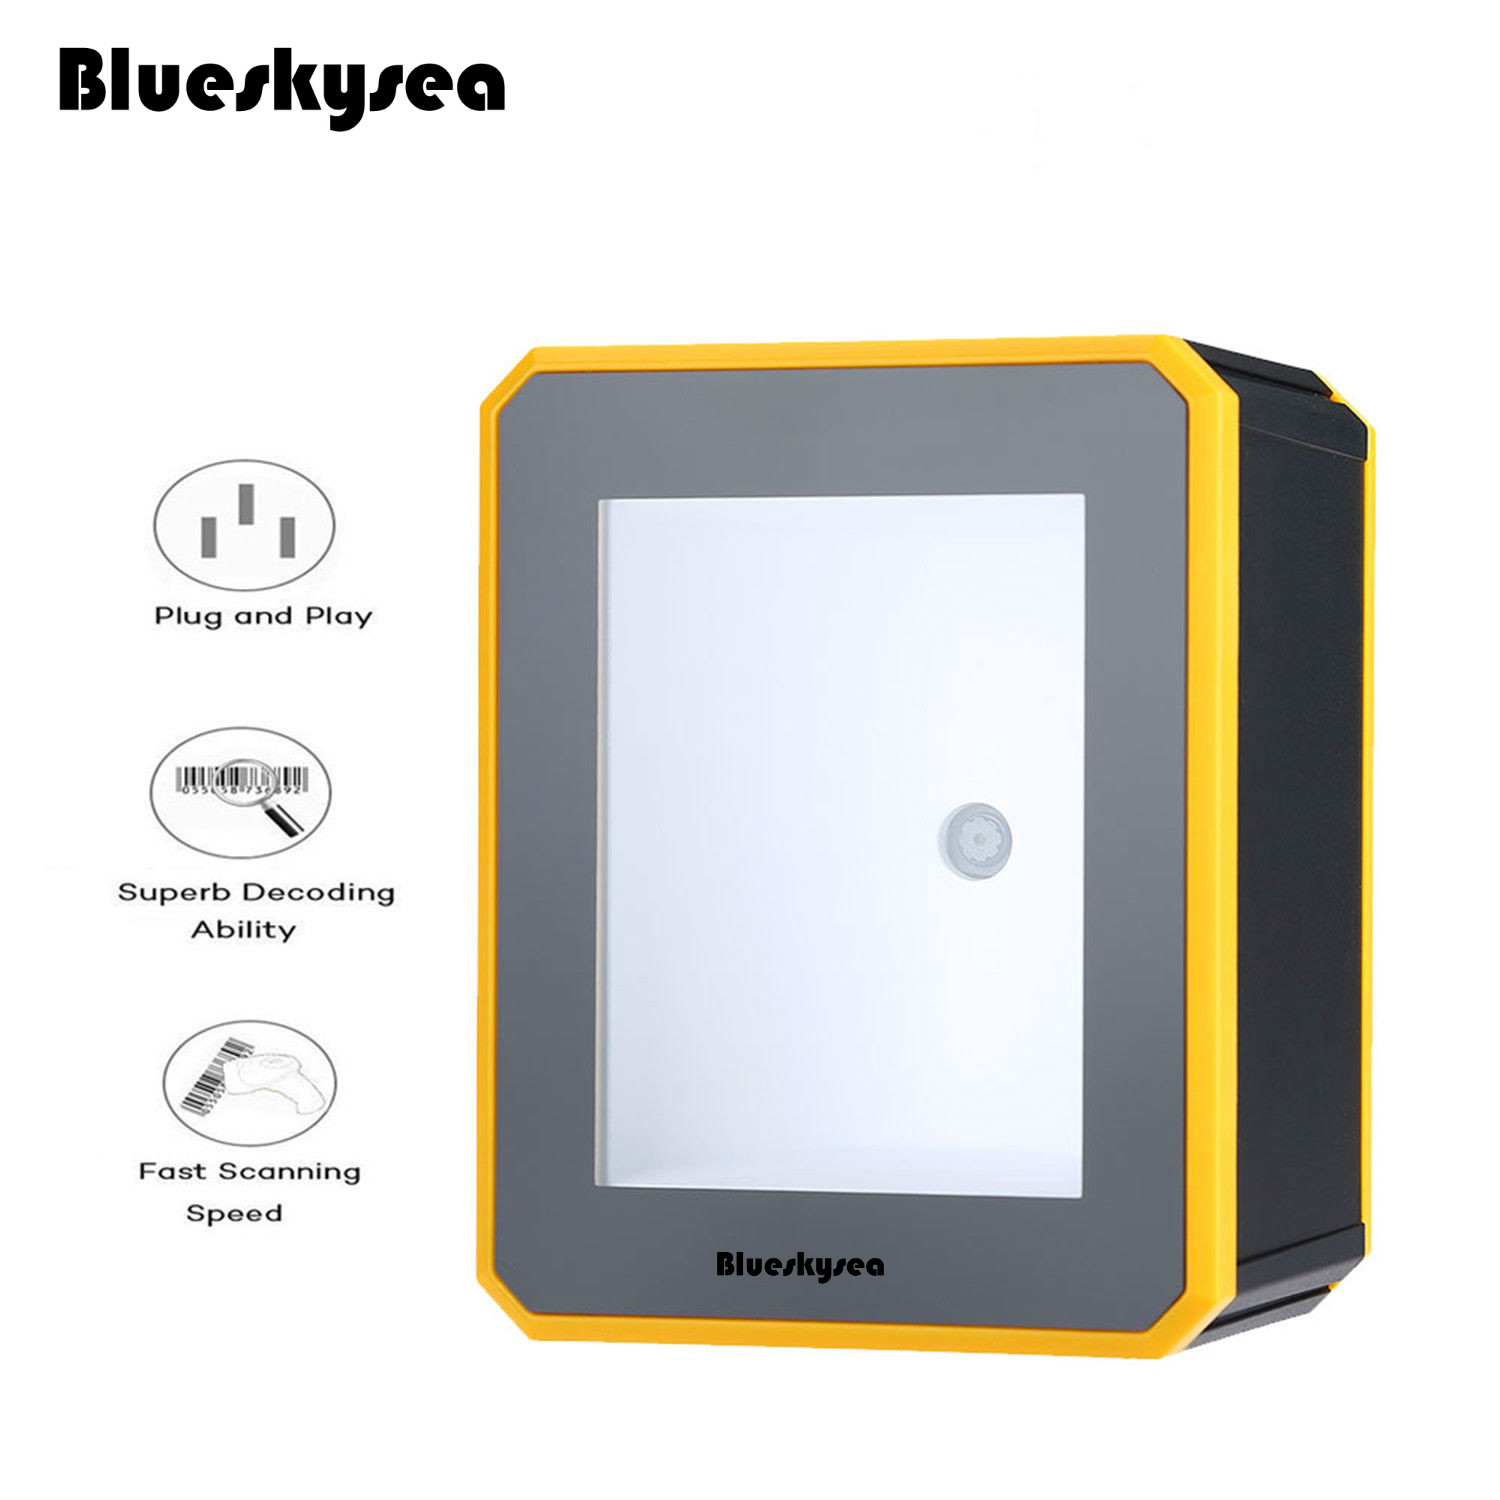 Blueskysea YK-MP2600 2D/QR Barcode Scanner Wired USB Presentation Bar Code Reader PDF417 DataMatrix Omnidirectional Code Scanner blueskysea yk wm3l 433mhz pdf417 datamatrix qr code reader 2d high speed wireless 1d 2d barcode scanner for windows mac ios